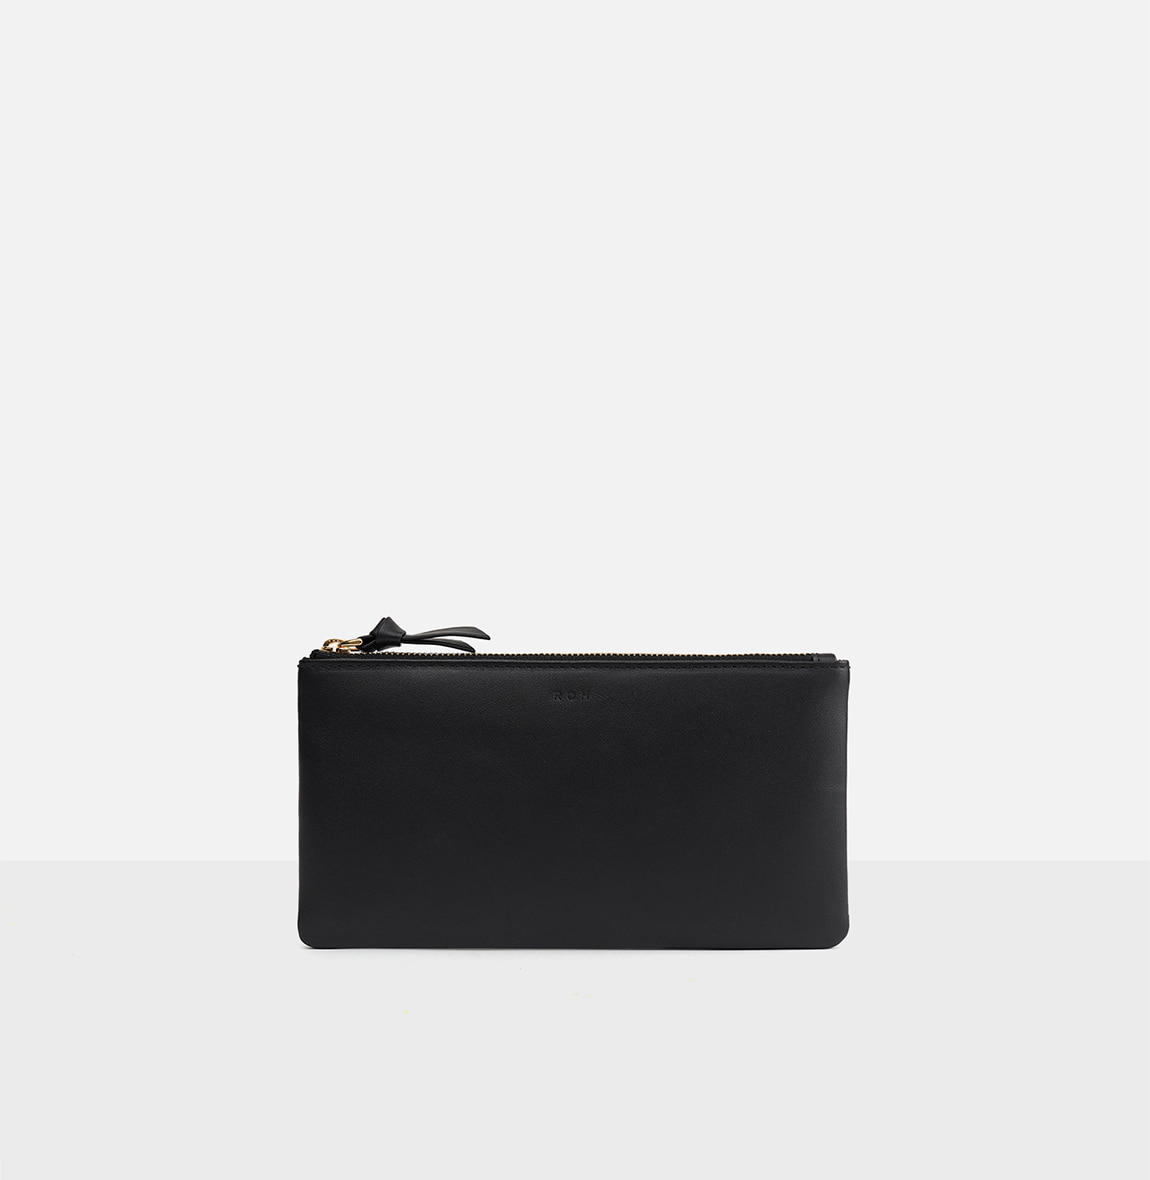 ROH Basic wallet objet 2 Black